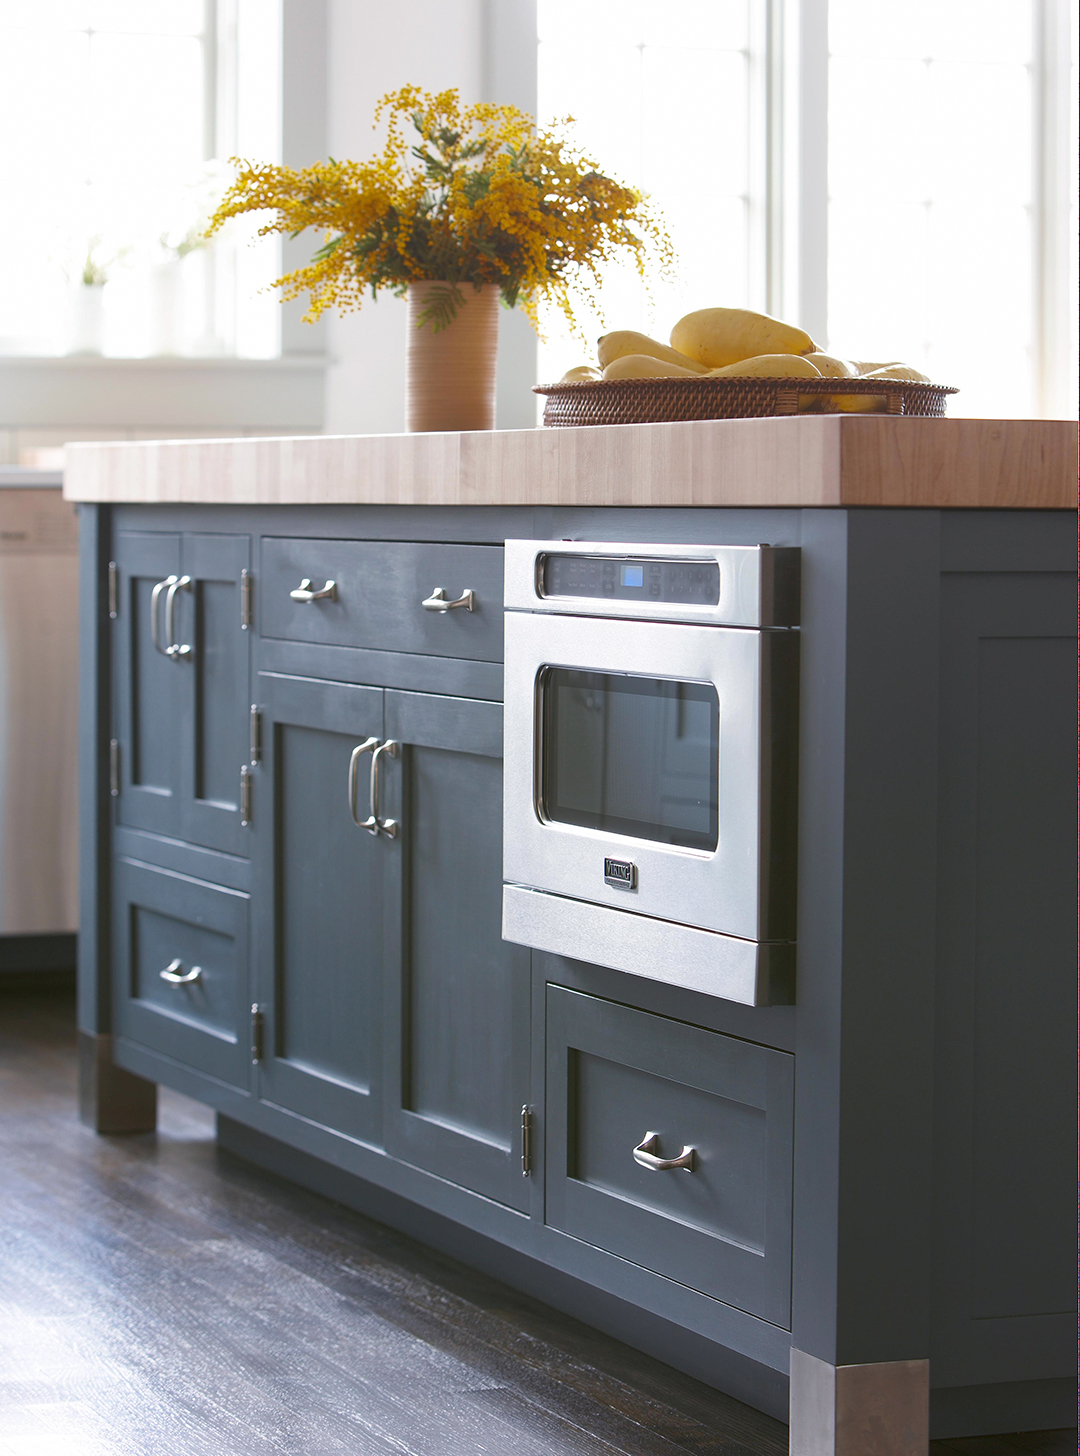 under counter blue kitchen cabinets and appliance